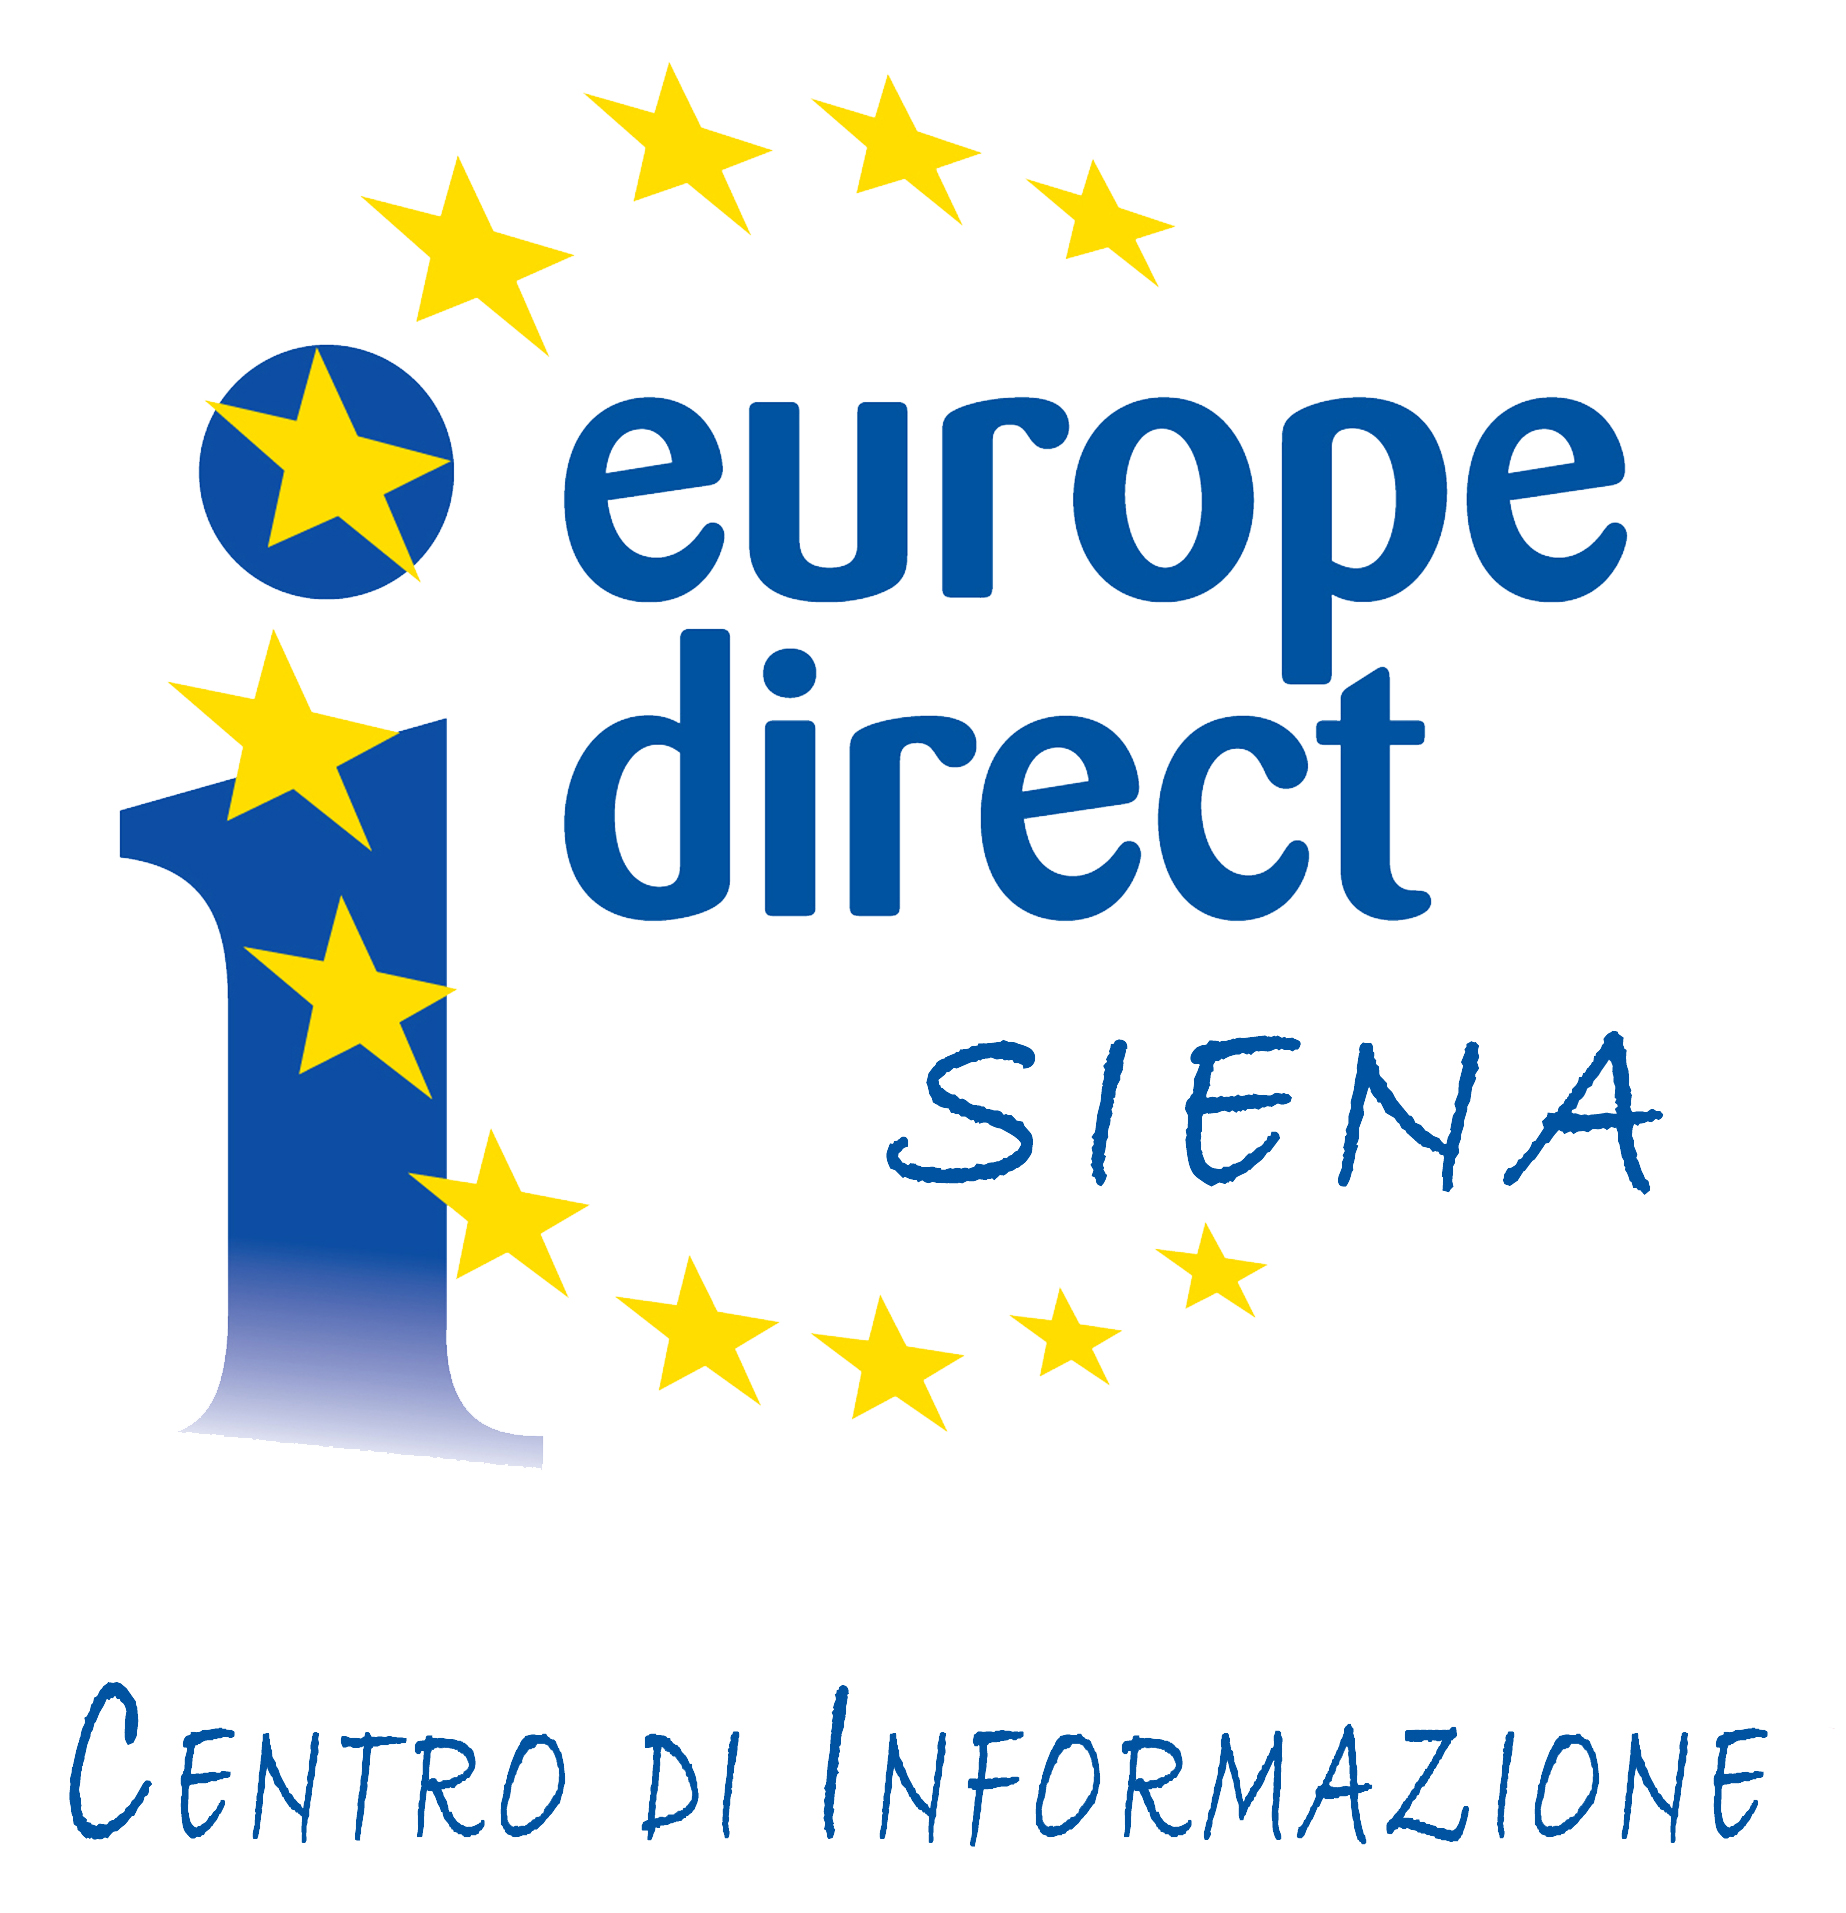 Europe Direct new